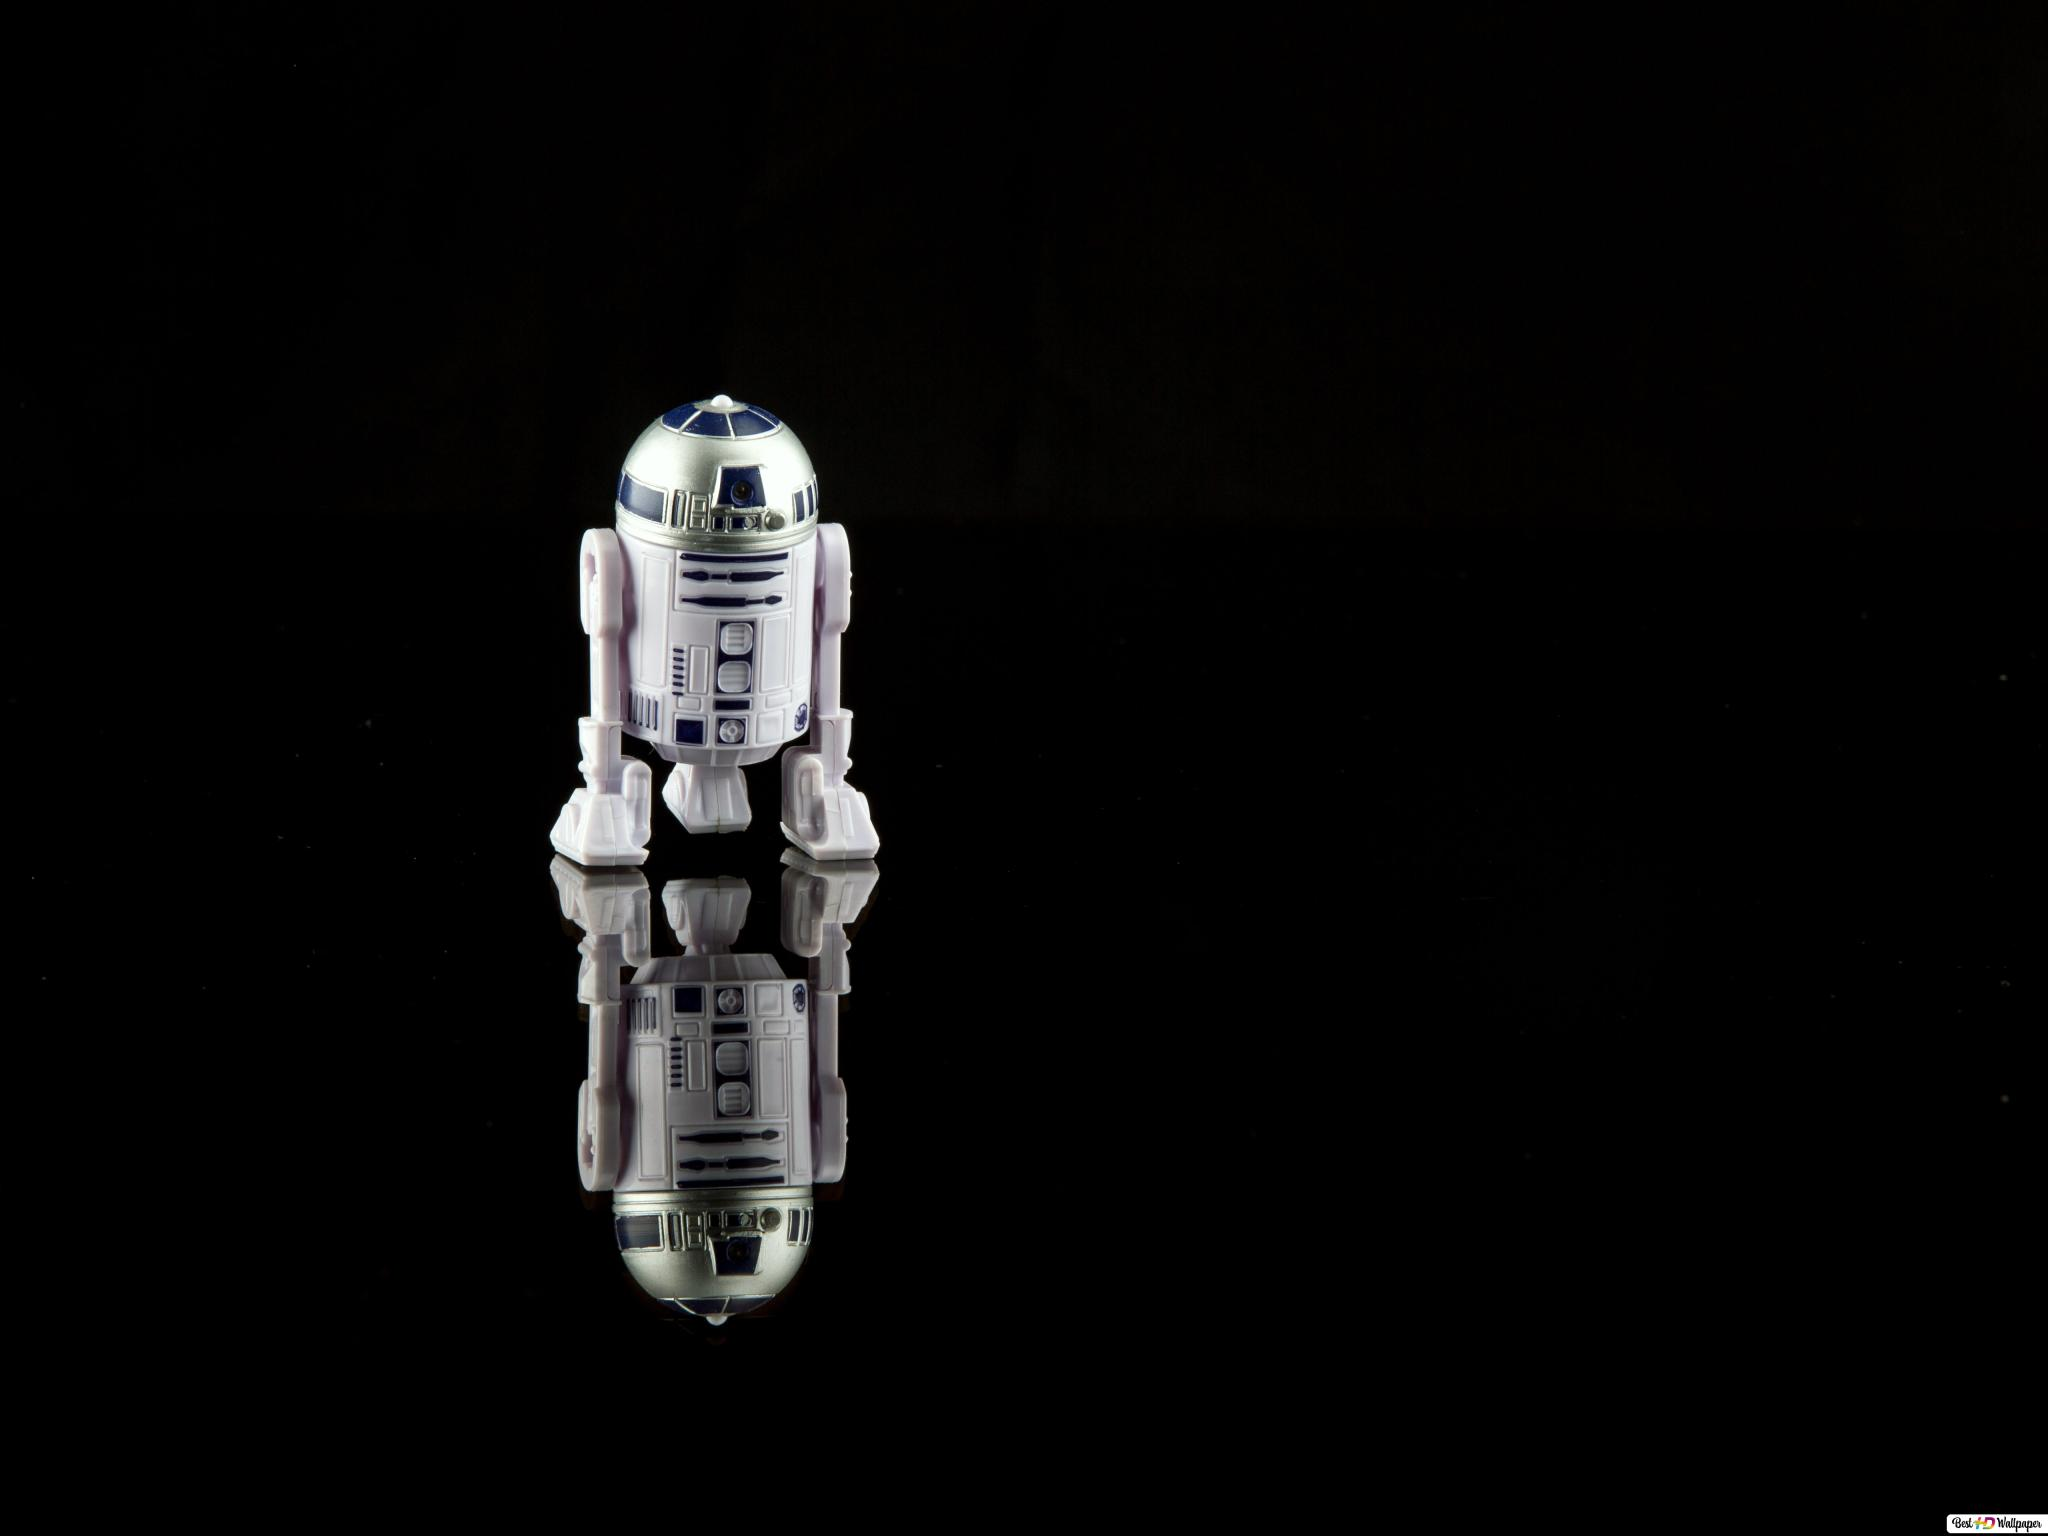 Star Wars Toy Hd Wallpaper Download